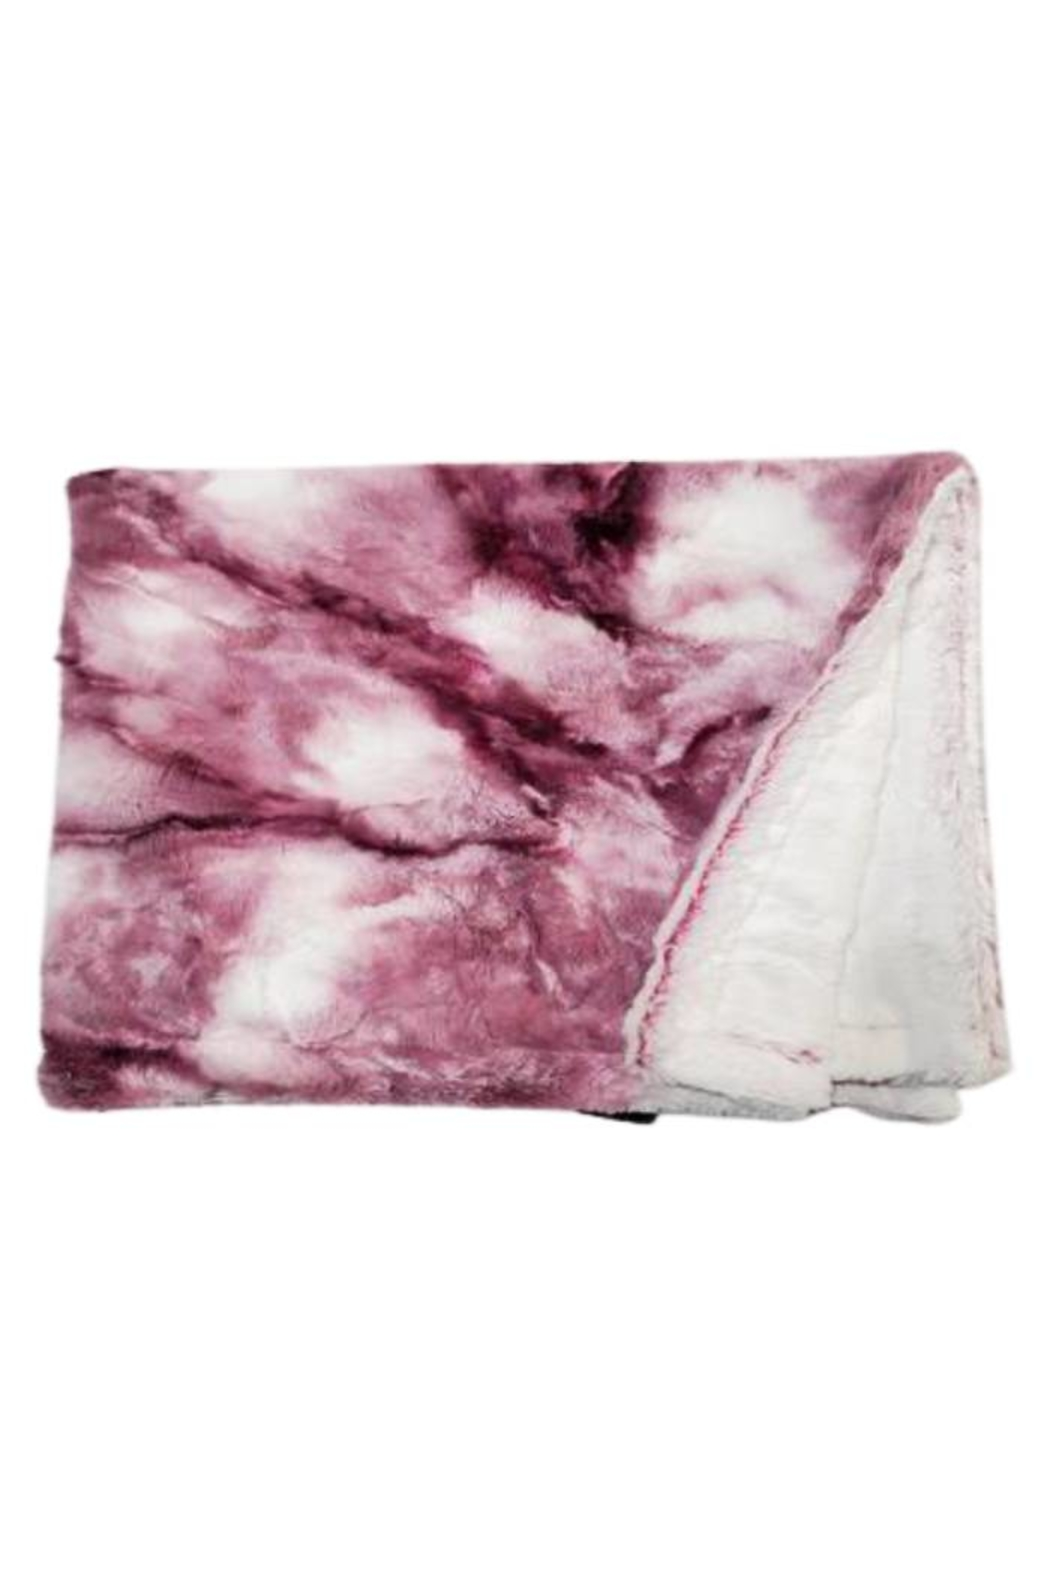 Winx+Blinx Sorbet Raspberry Minky Blankets (34 X 29 Inches)for Newborn Baby Boys Girls Winter Swaddle - Main Image